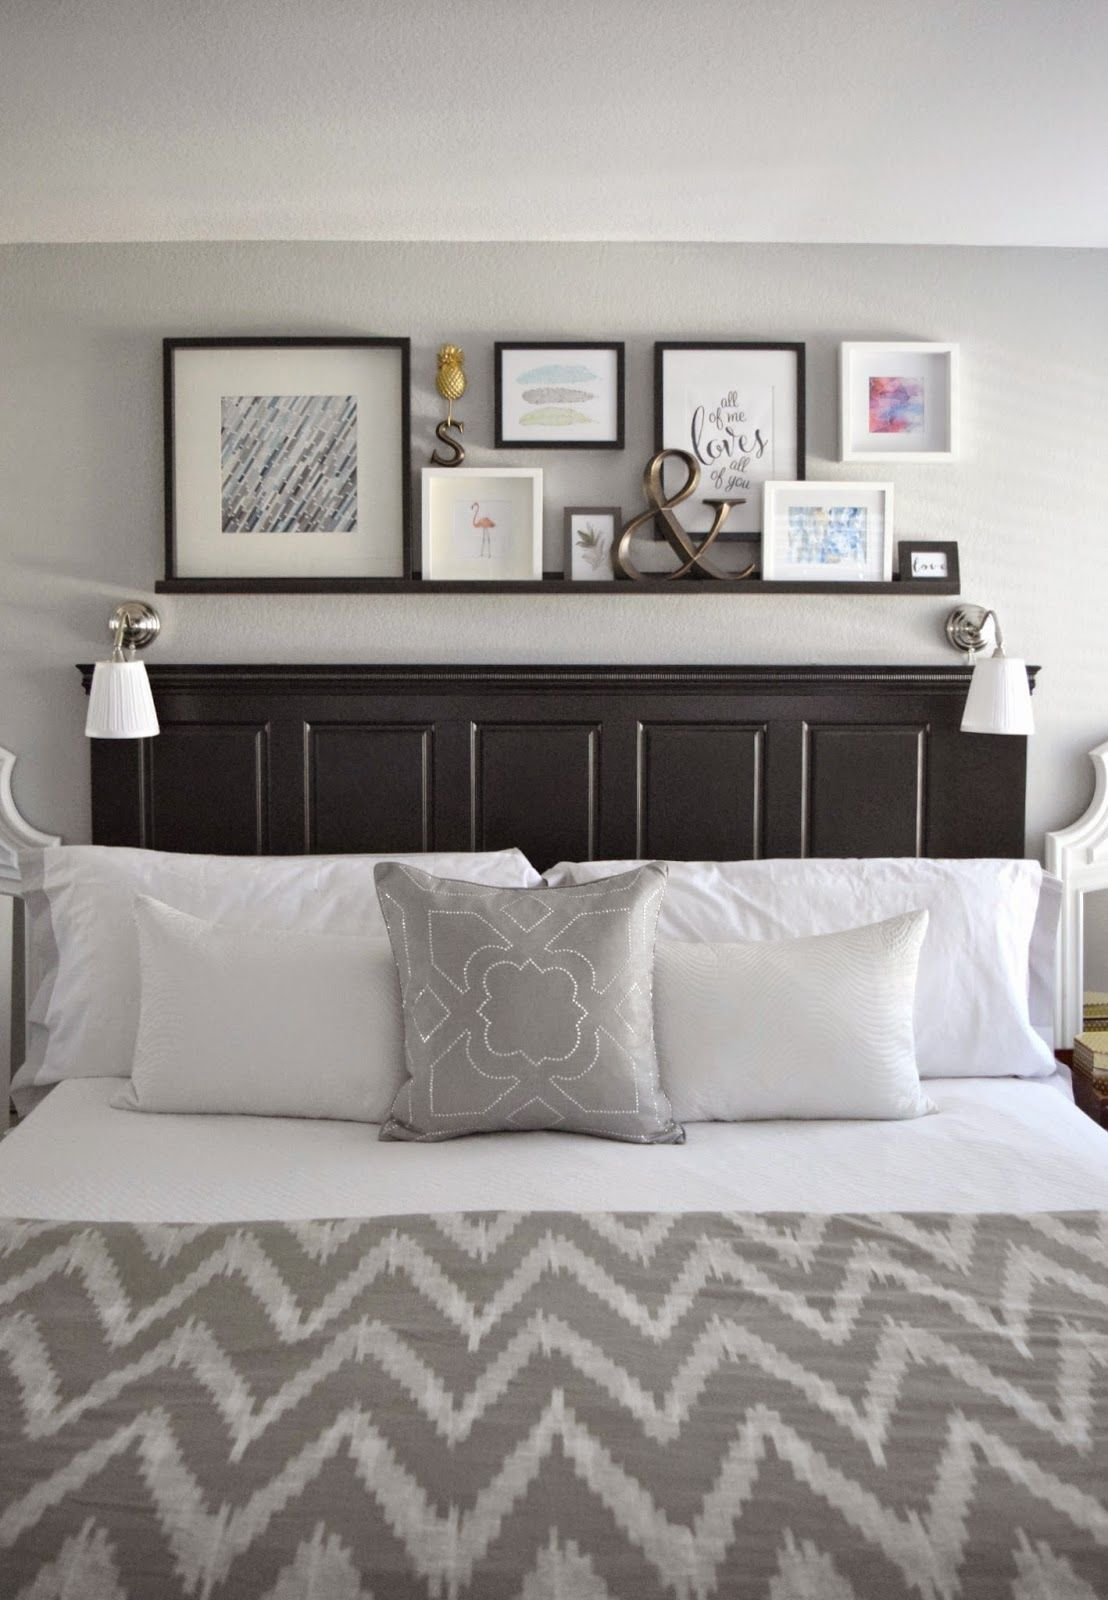 20 Decorating Tricks For Your Bedroom Master Bedrooms Decor Wall Decor Bedroom Small Master Bedroom